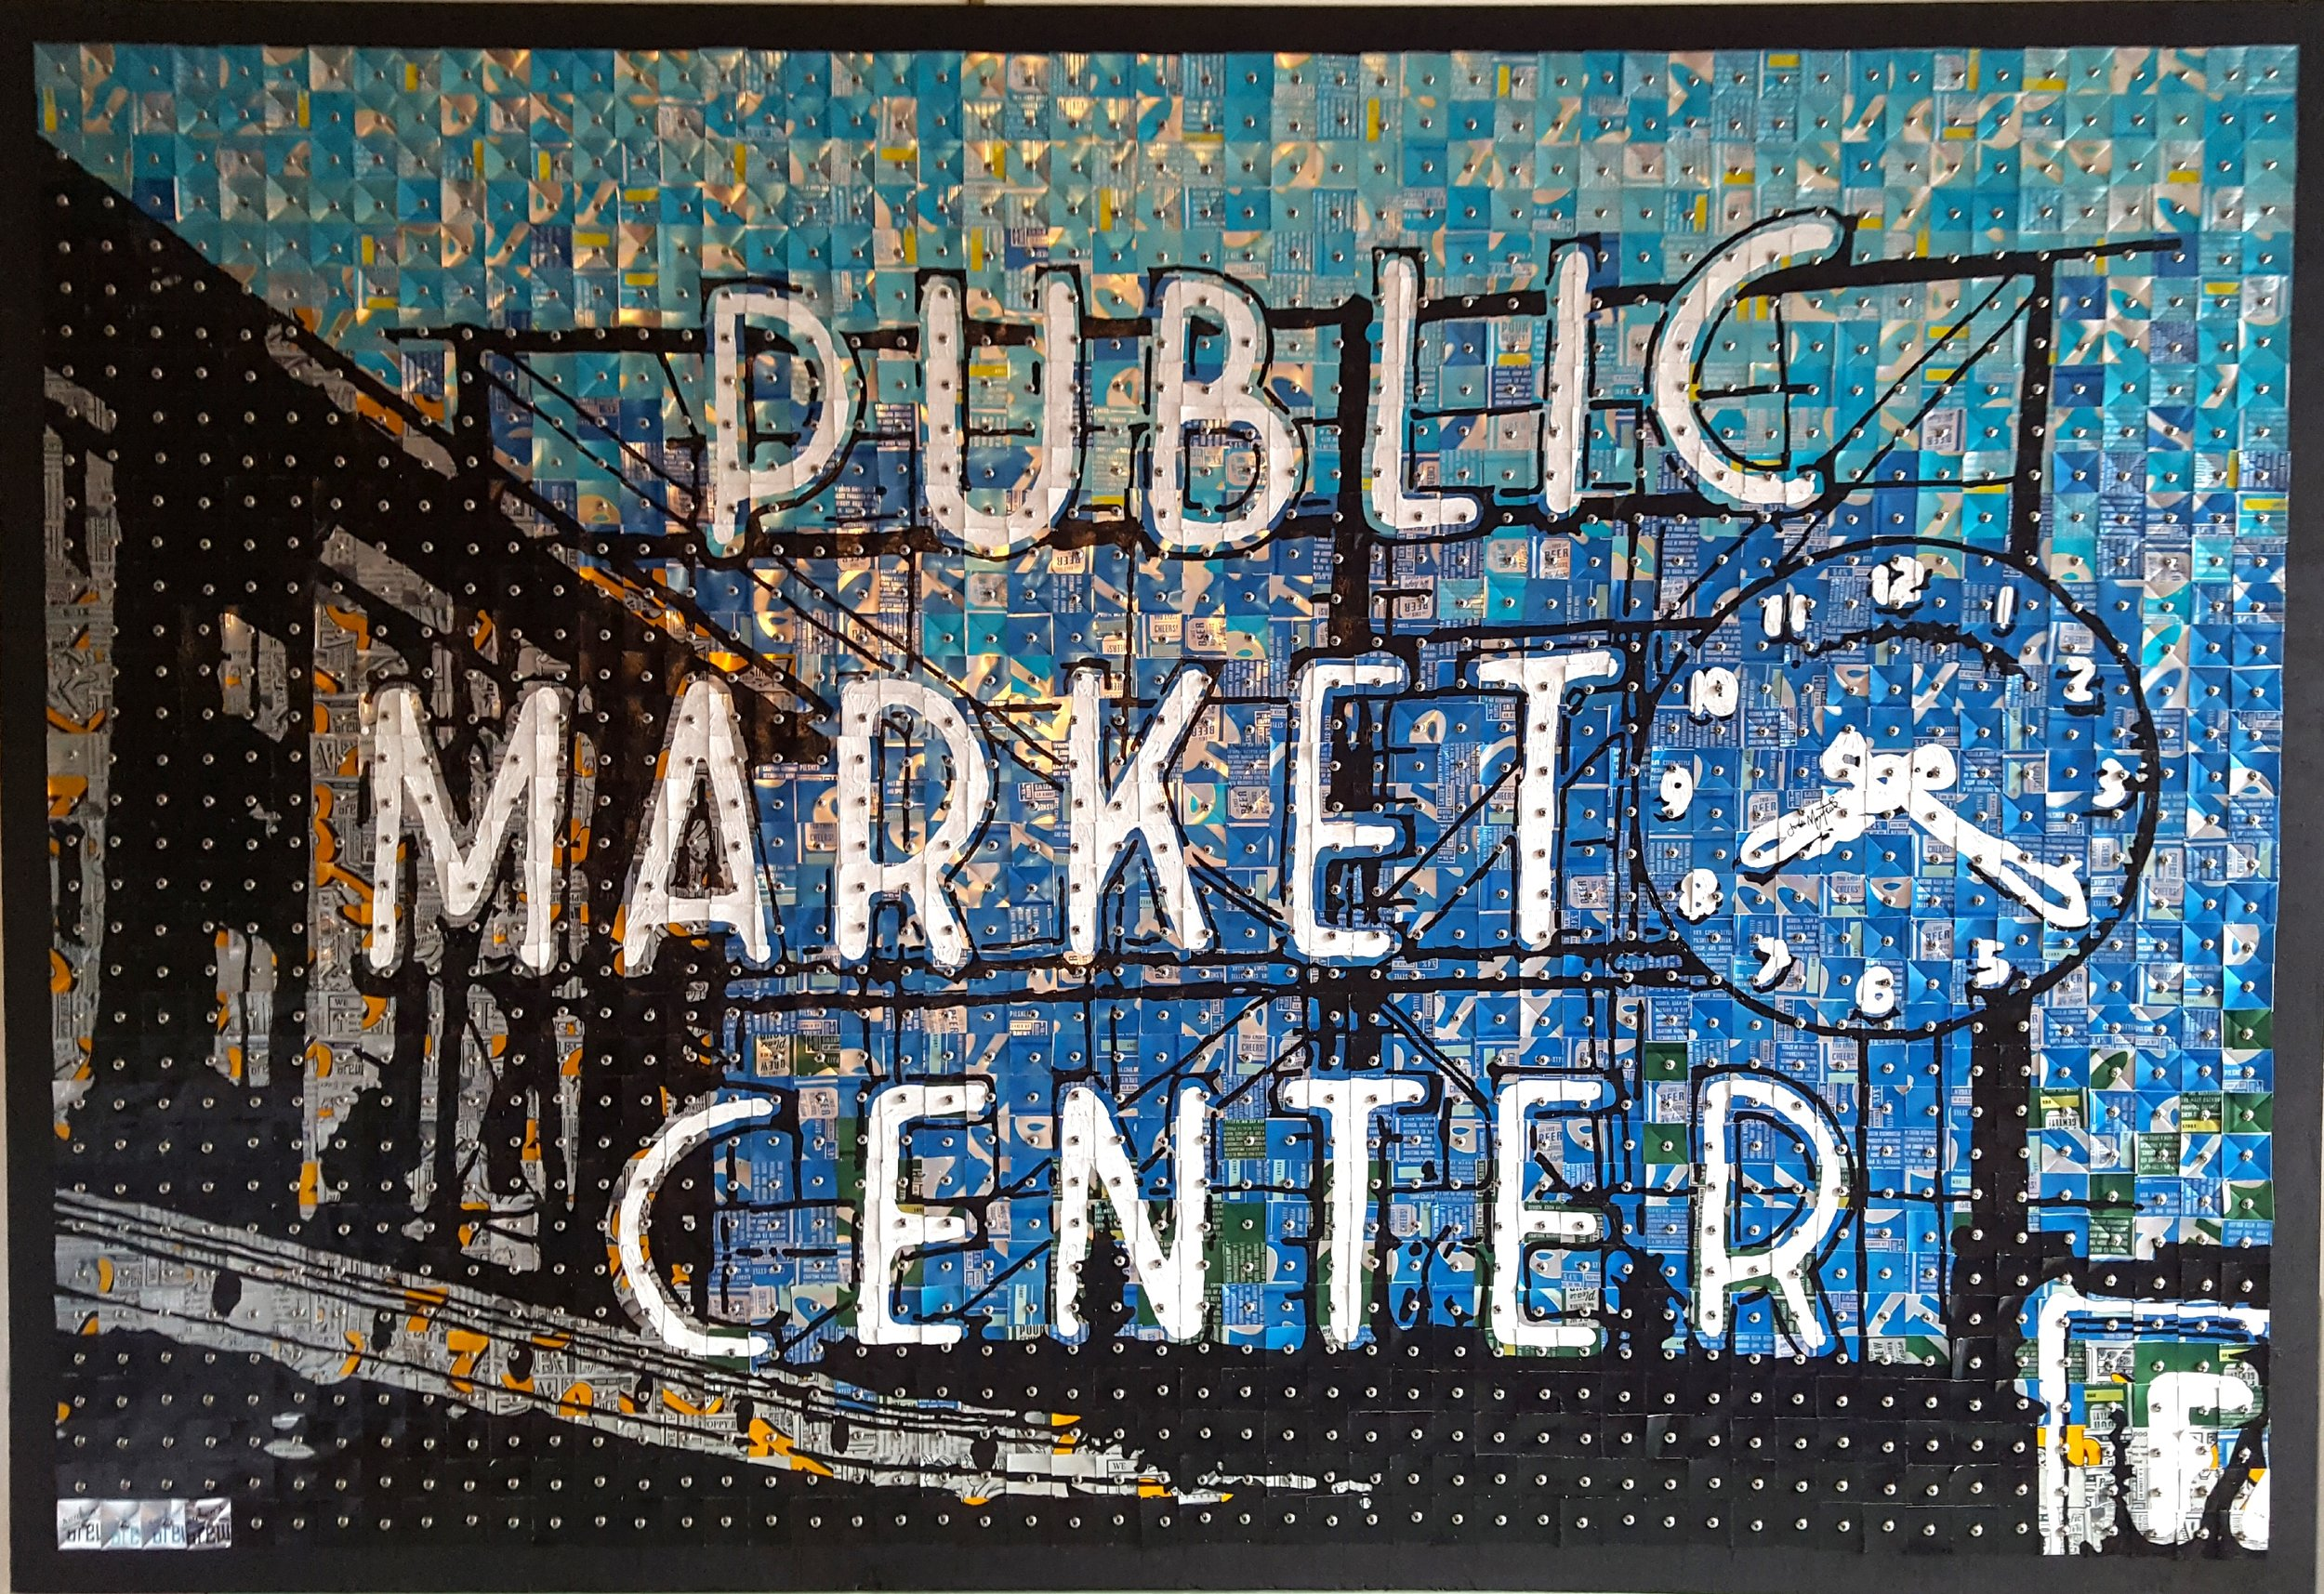 Public Market Center#Aluminum cans on wood panel#33 x 48 inches#$3,500